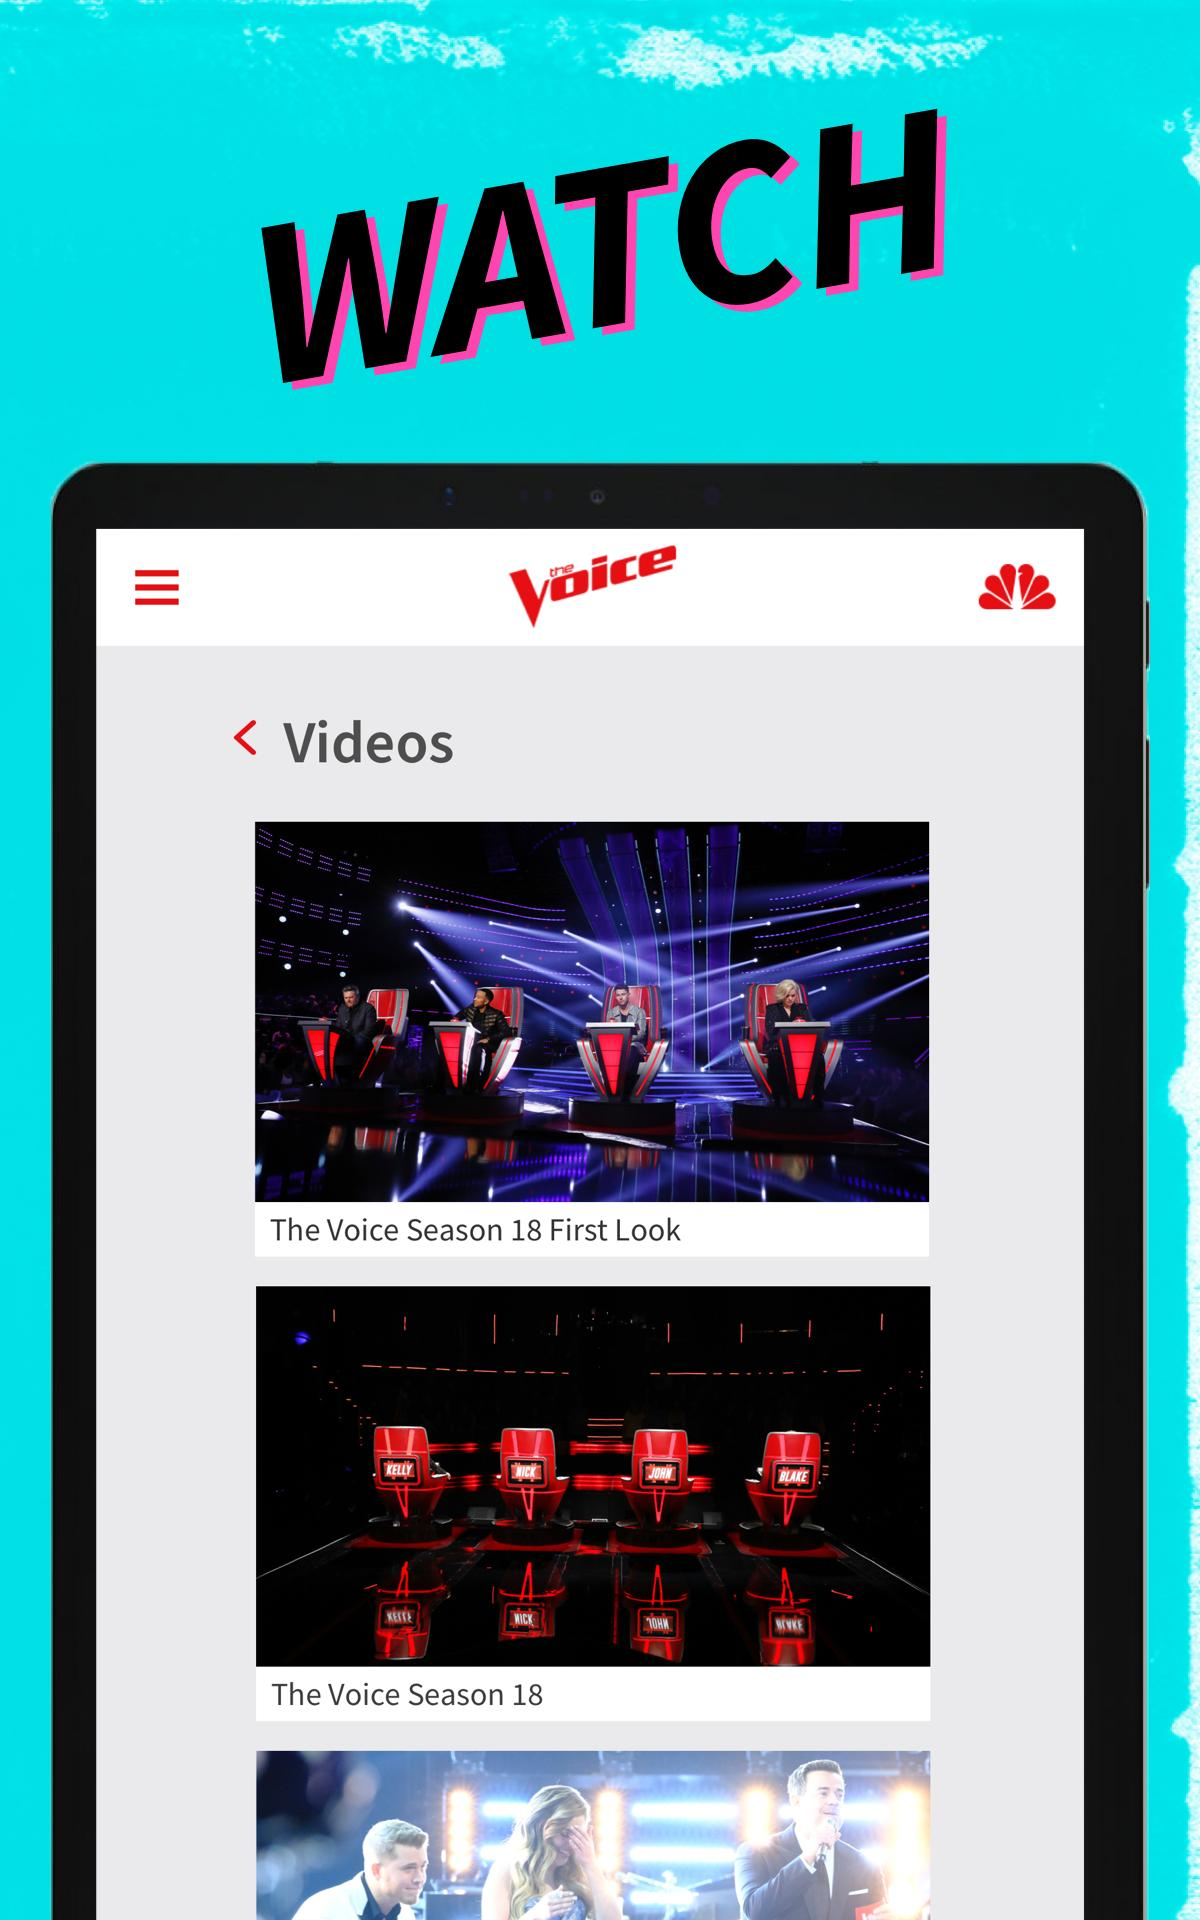 The Voice Official Apk on NBC 2